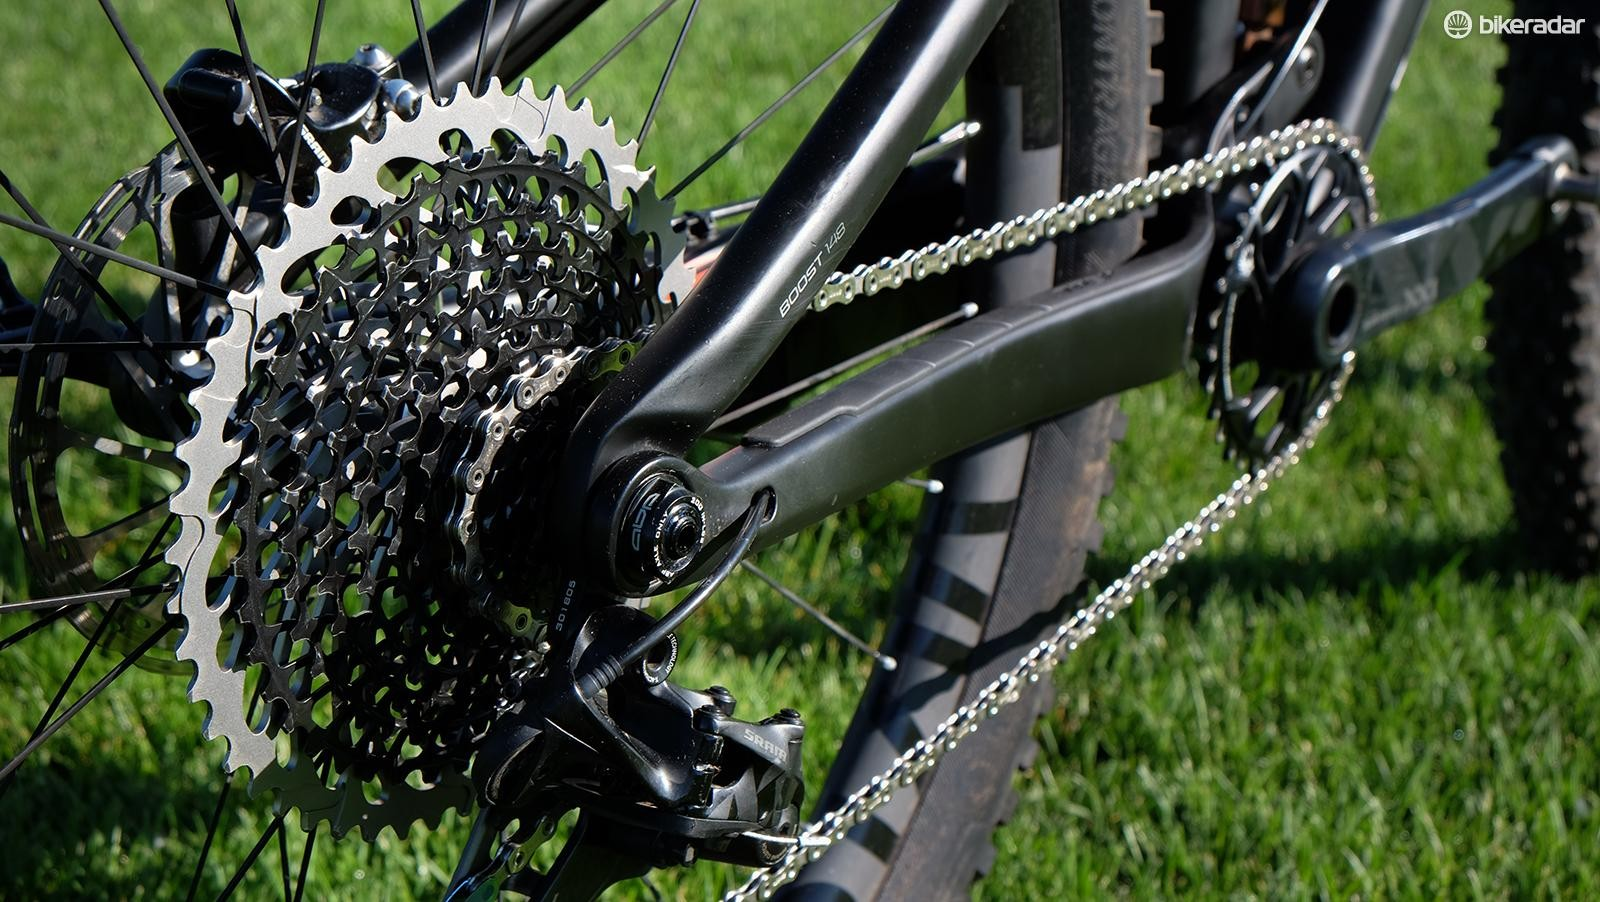 The Eagle X01 drivetrain shifts smoothly